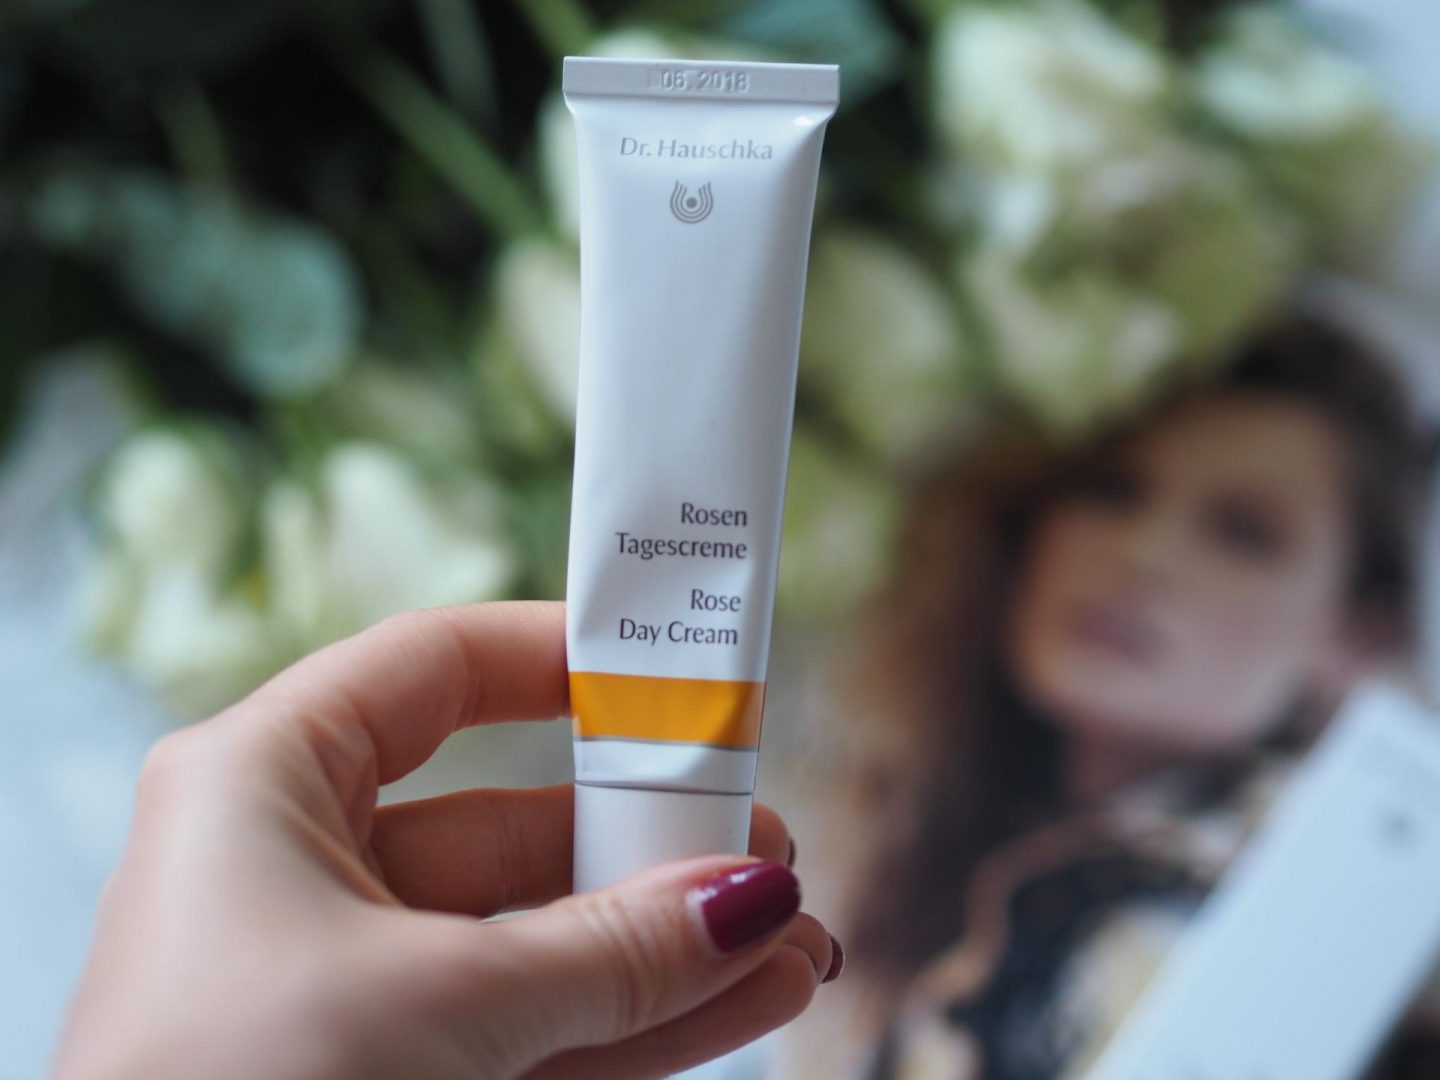 Winter Skincare - Product: Dr. Hauschka Rose Day Cream